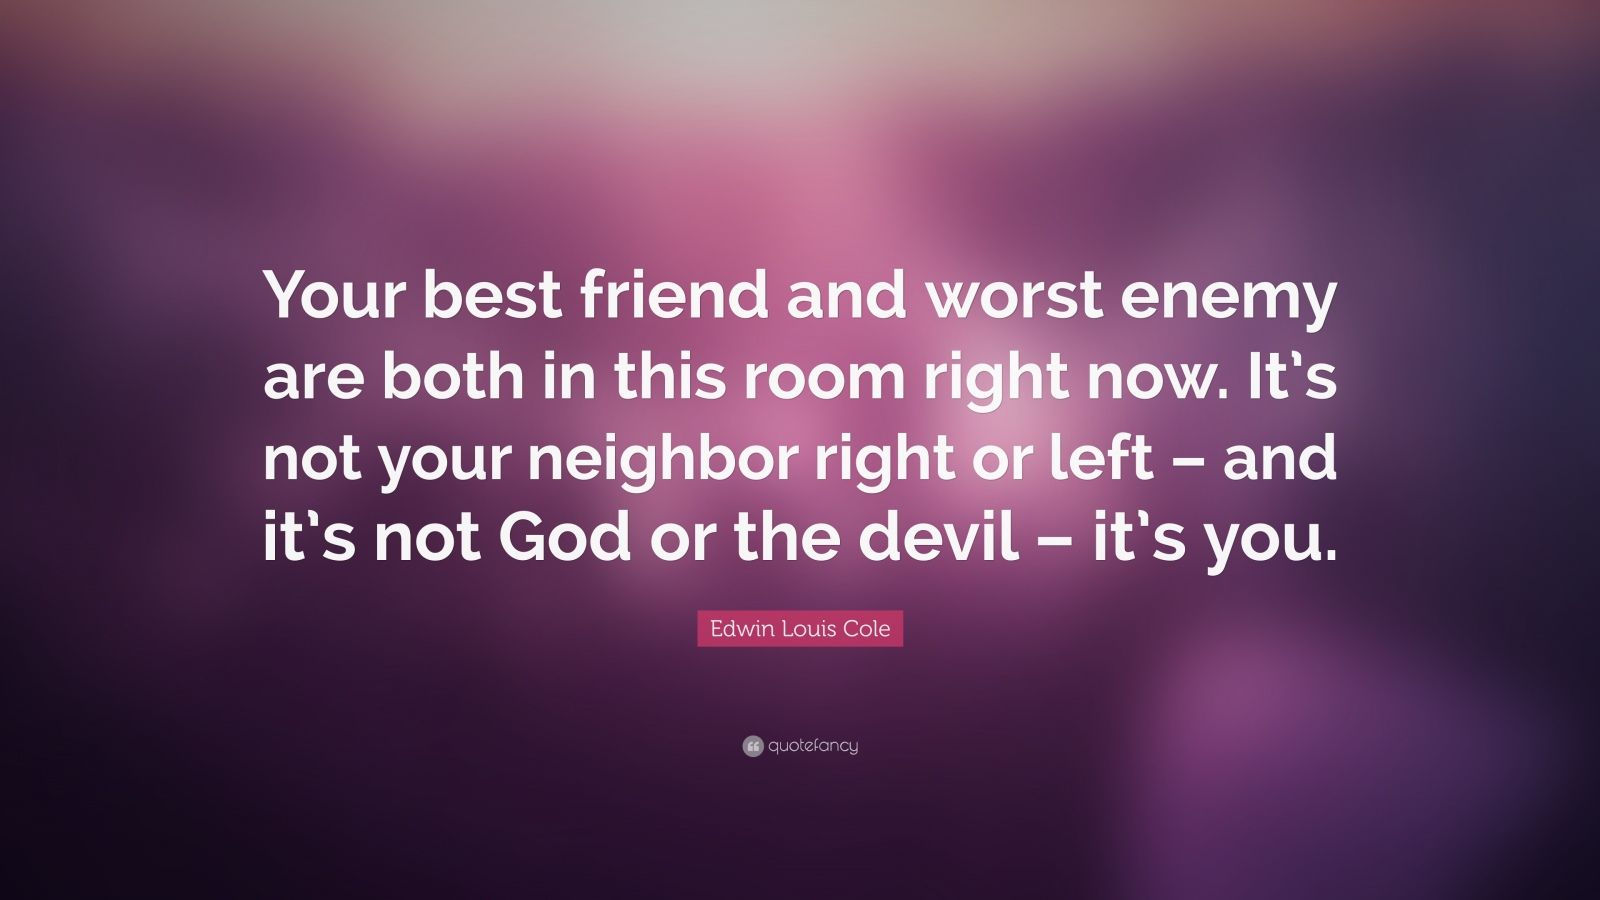 """Edwin Louis Cole Quote: """"Your best friend and worst enemy are both in this room right now. It's not your neighbor right or left – and it's not God or the devil – it's you."""""""